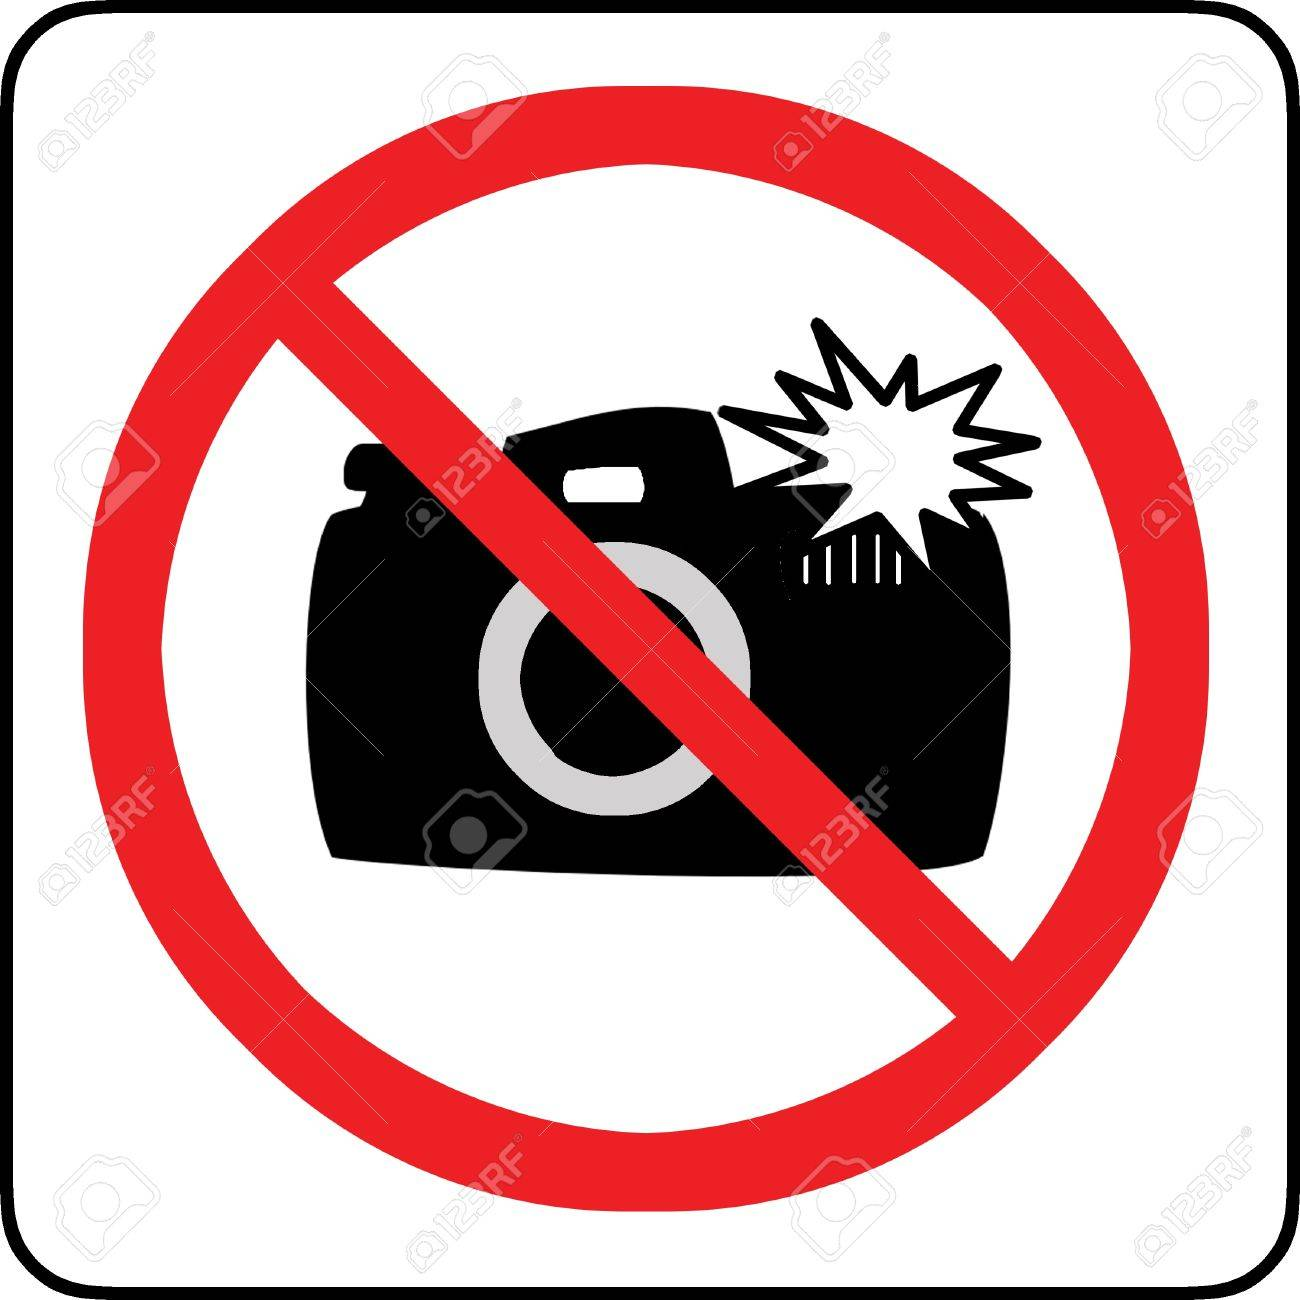 No photography with flash allowed sign Stock Photo - 12008345